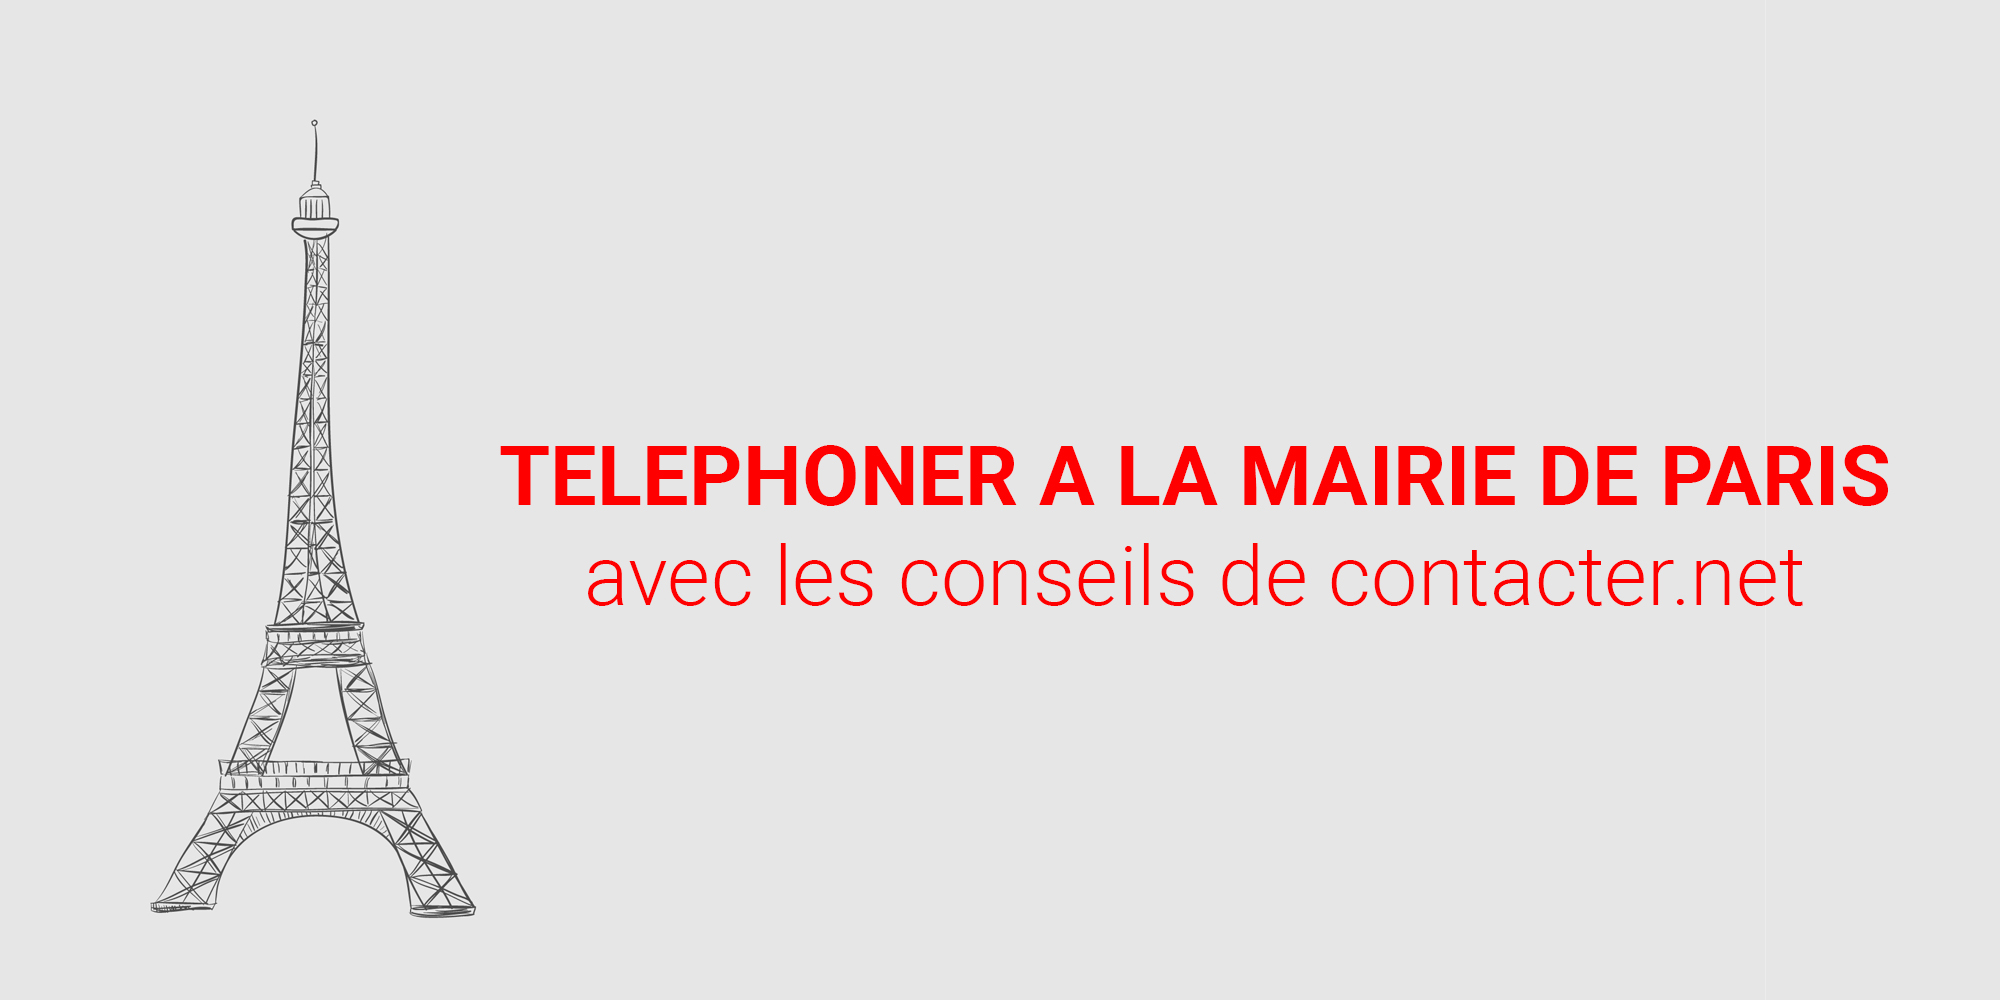 telephoner a la mairie de paris